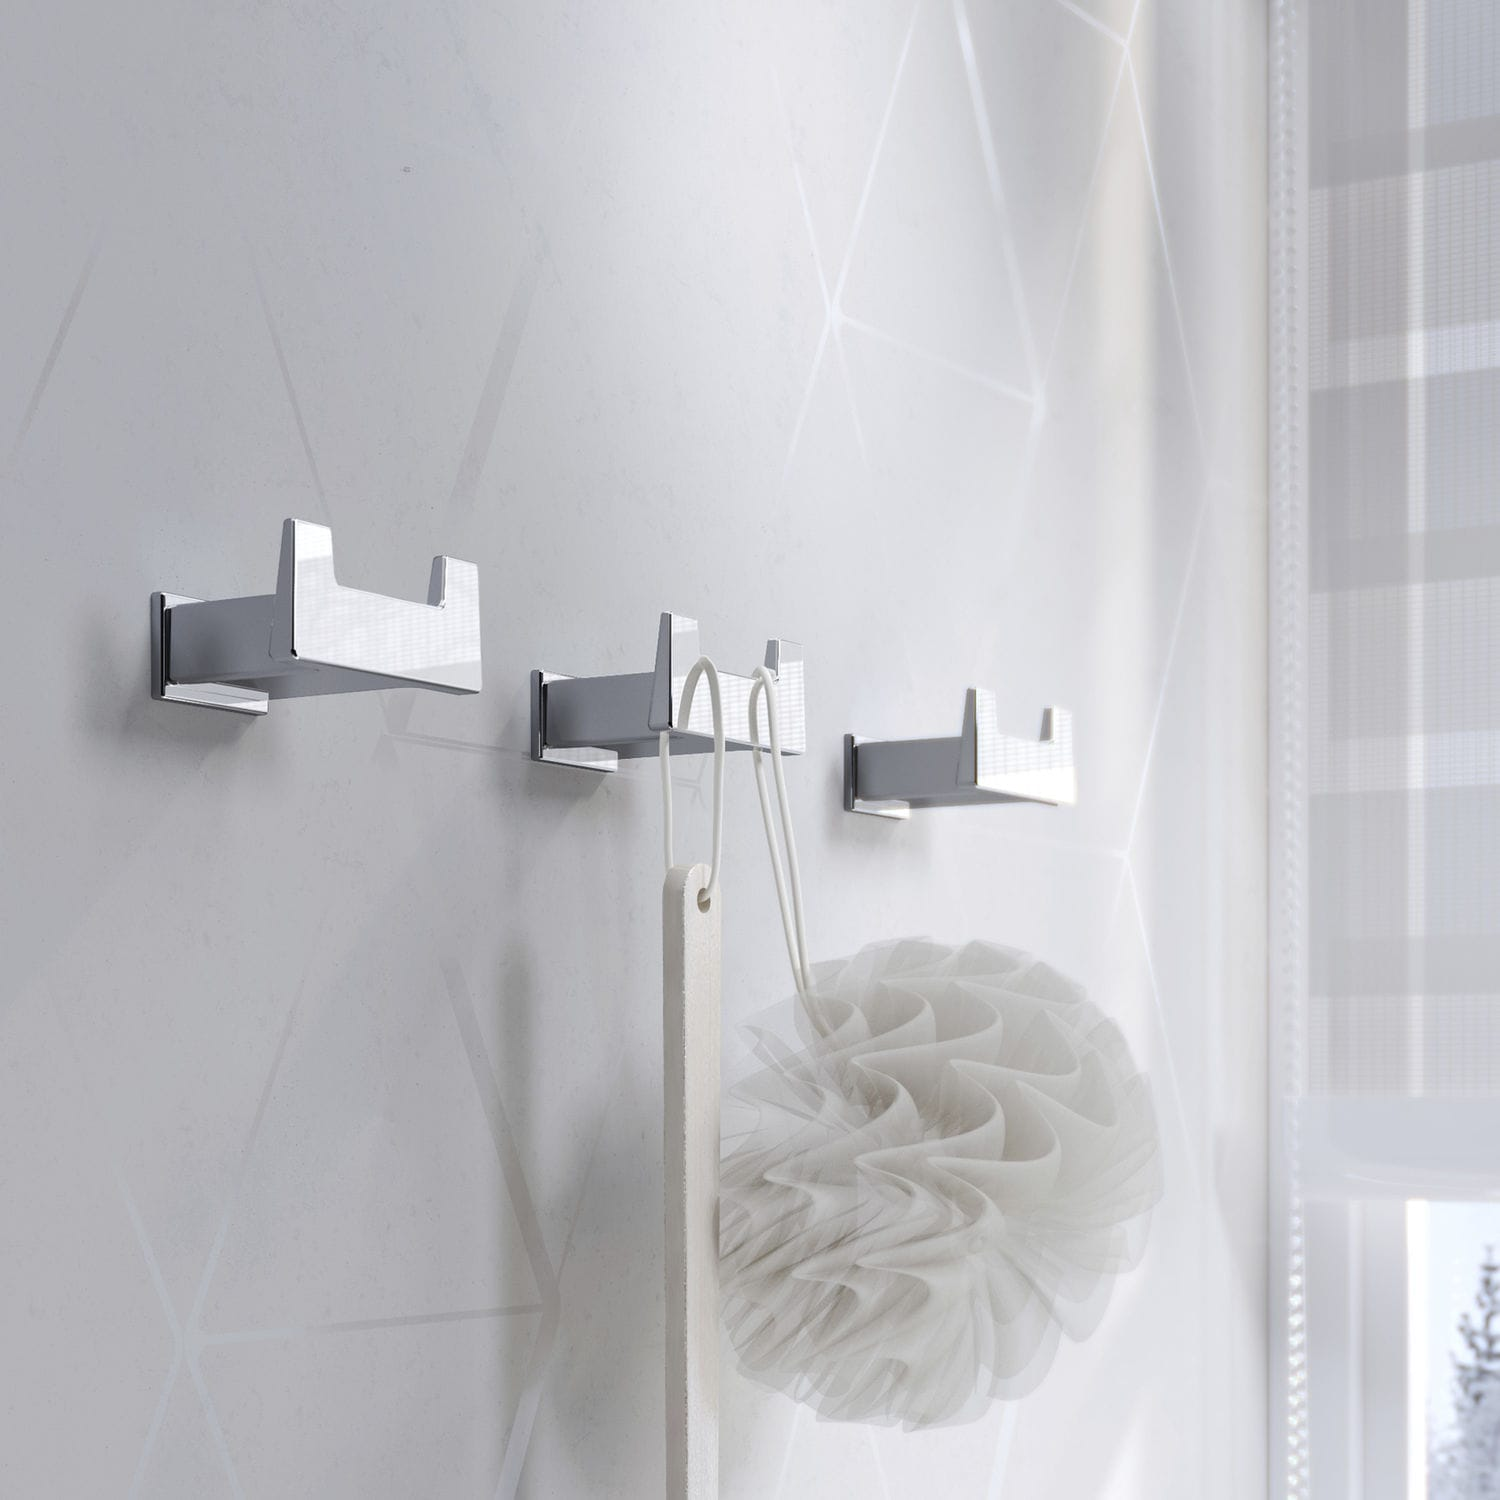 Contemporary coat hook / metal / double / bathroom - S-CUBE: 166817 ...